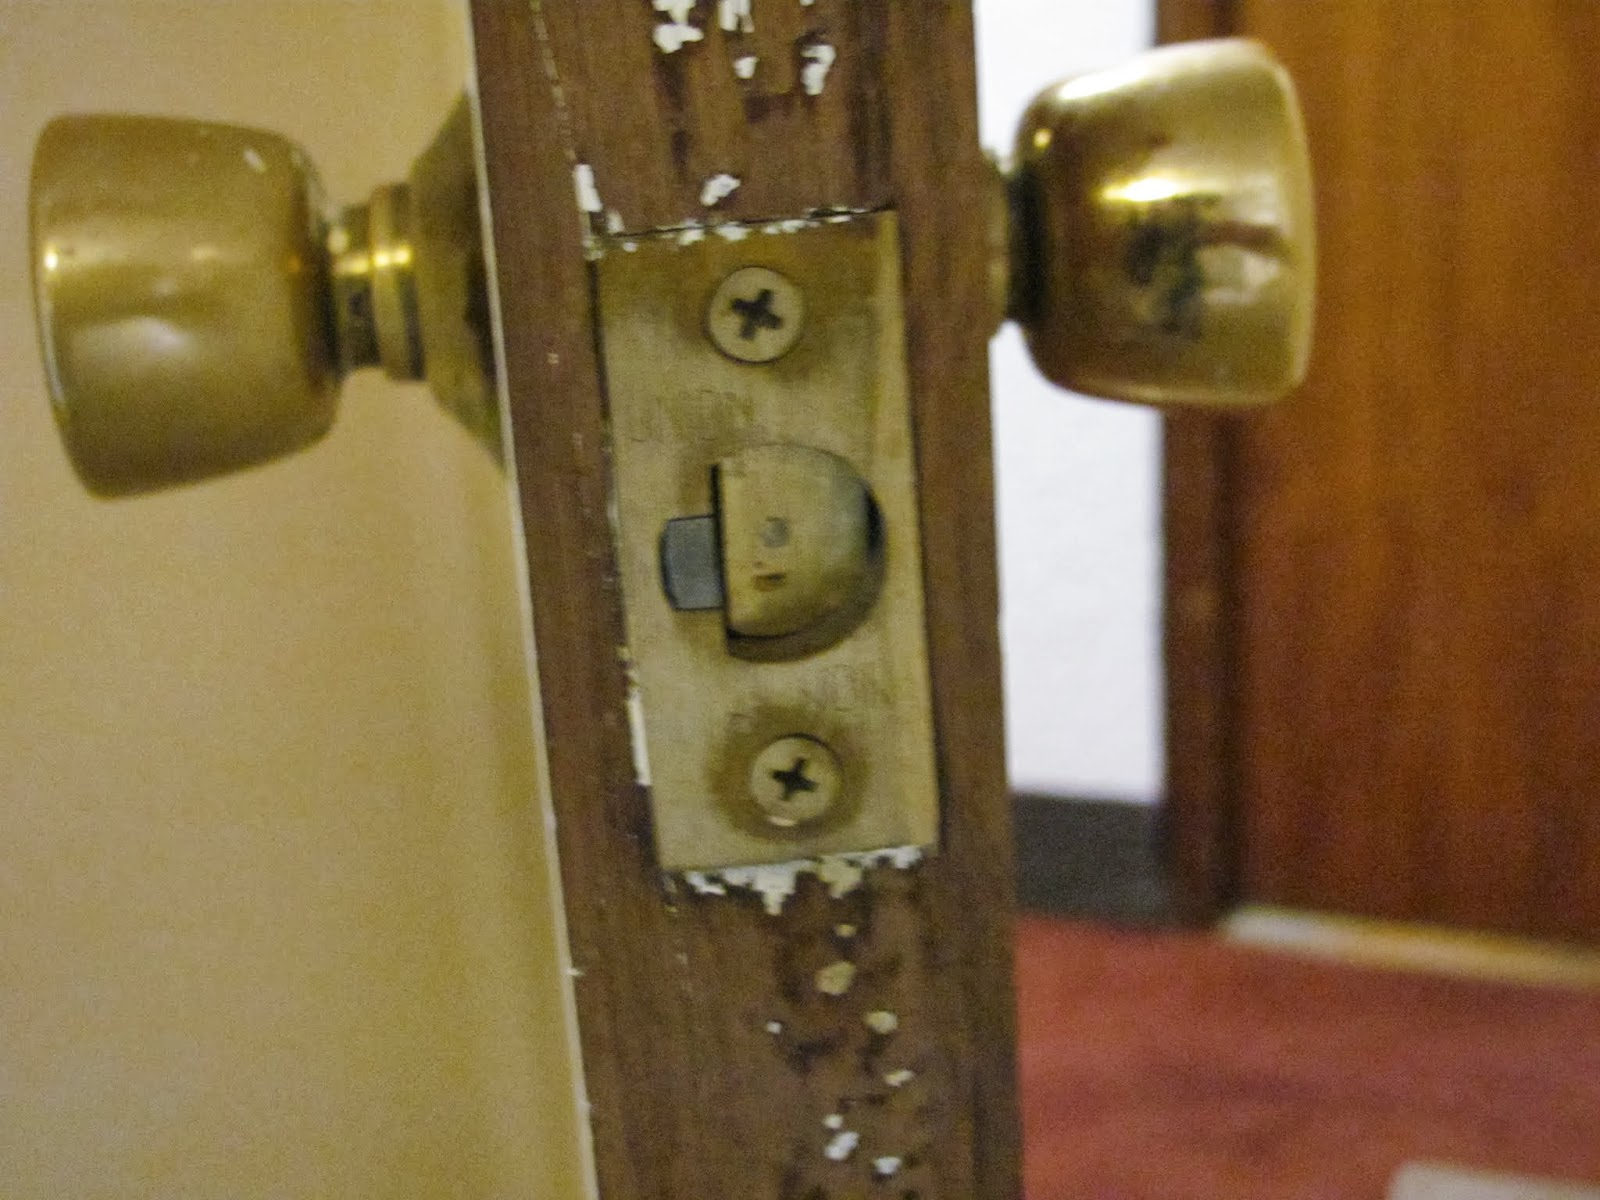 The bolt is permanently locked on the decorative knob